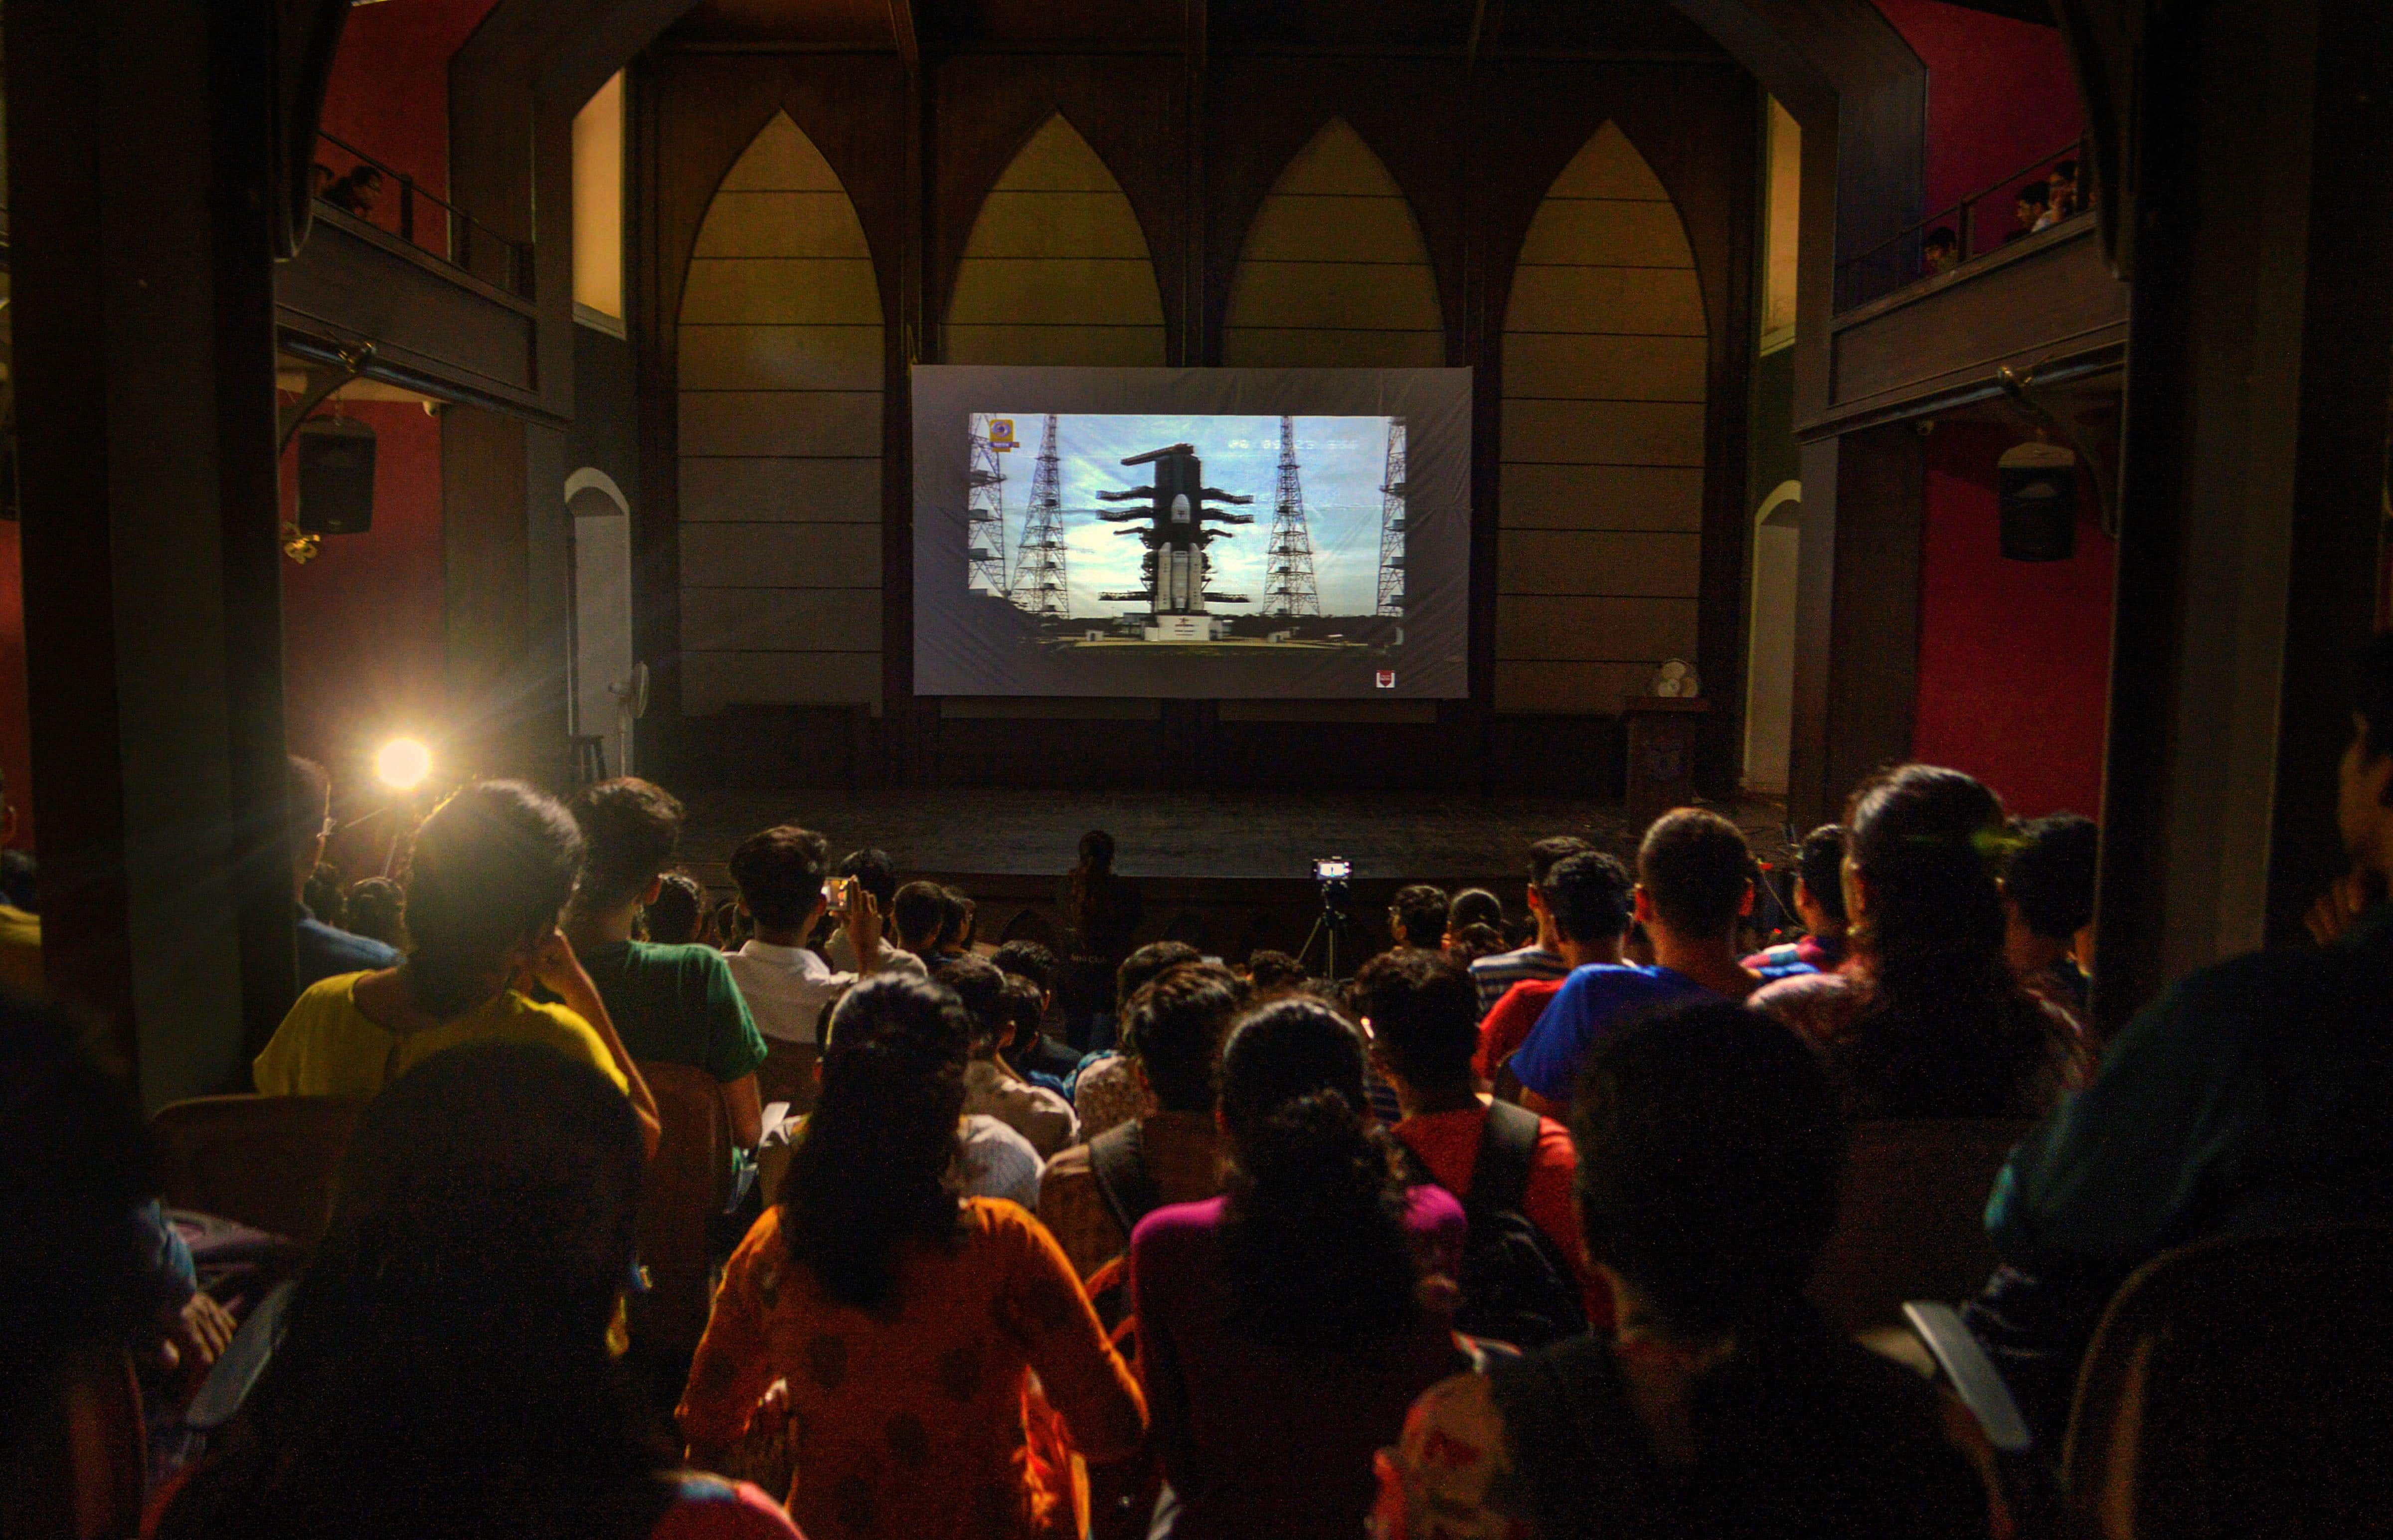 Pune: Fergusson College students watch the live telecast of ISRO's Chandrayaan-2 launch, in Pune, Monday. (PTI)